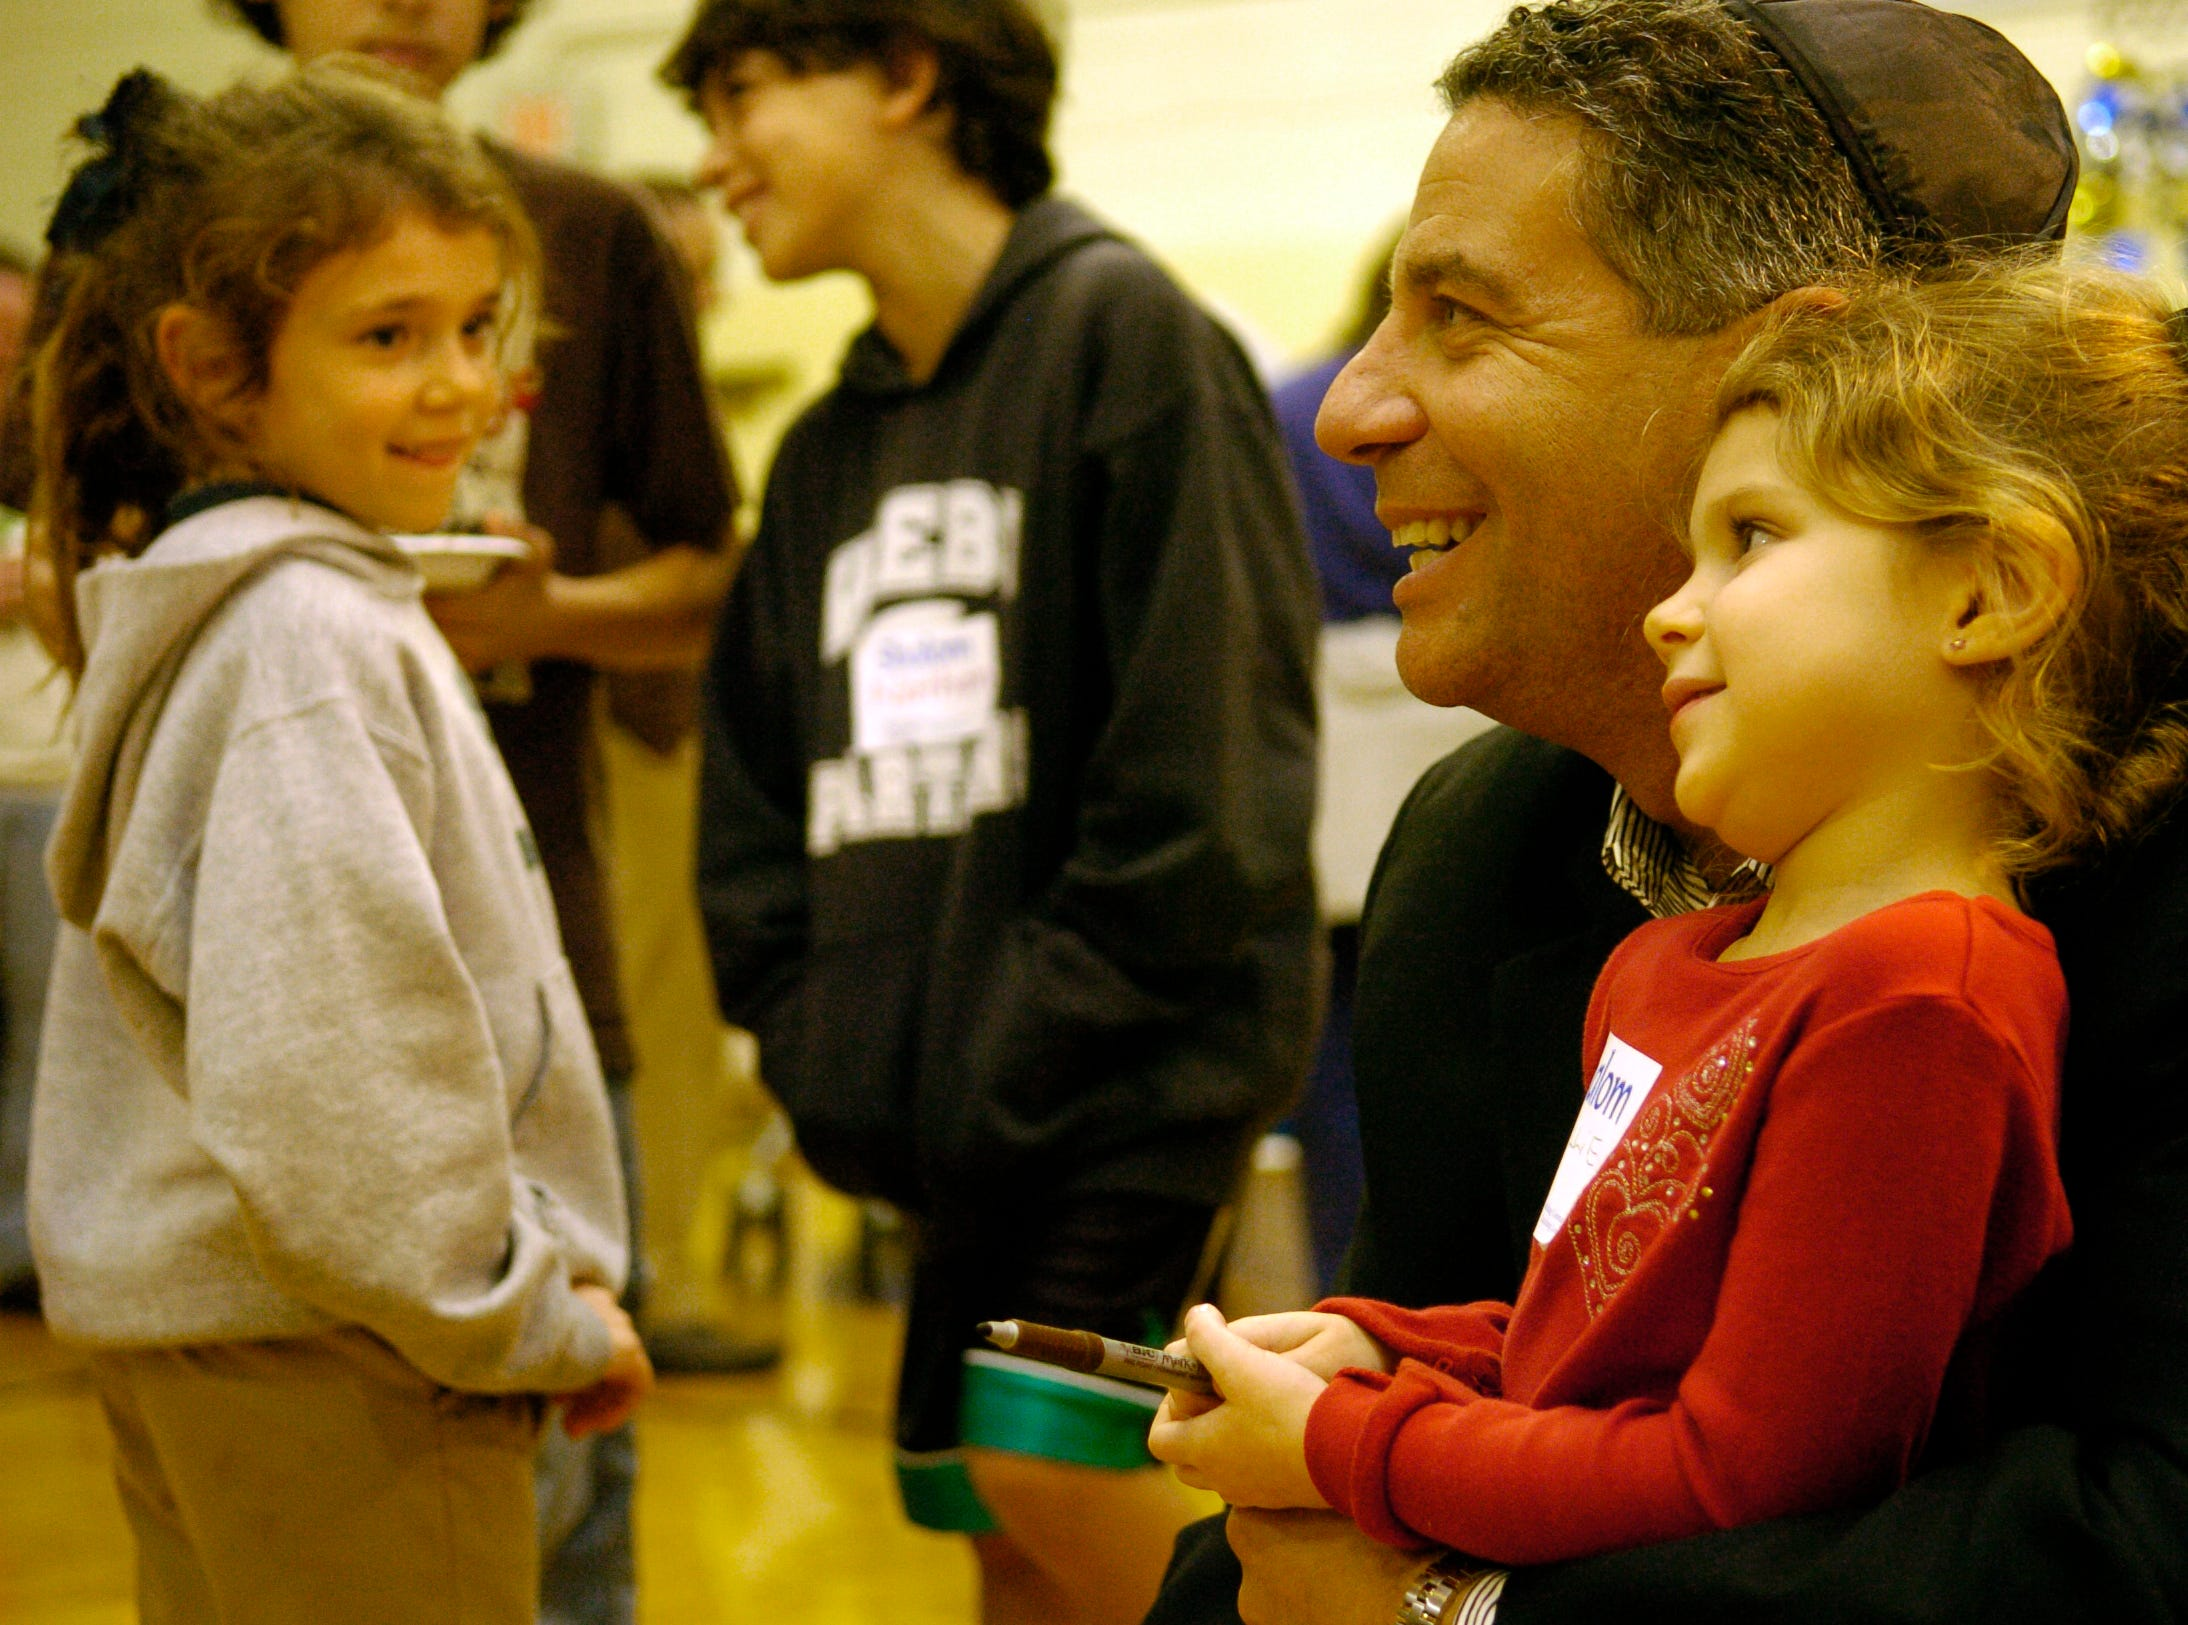 Tuesday,December 11,2007  The University of Tennessee men's basketball coach Bruce Pearl has his photograph take with Hallie Boring, 4, during Menorah Madness at the Arnstein Jewish Community Center. At left is Arielle Rosen, 8, who watches the exchange after having her shirt autographed by Pearl.